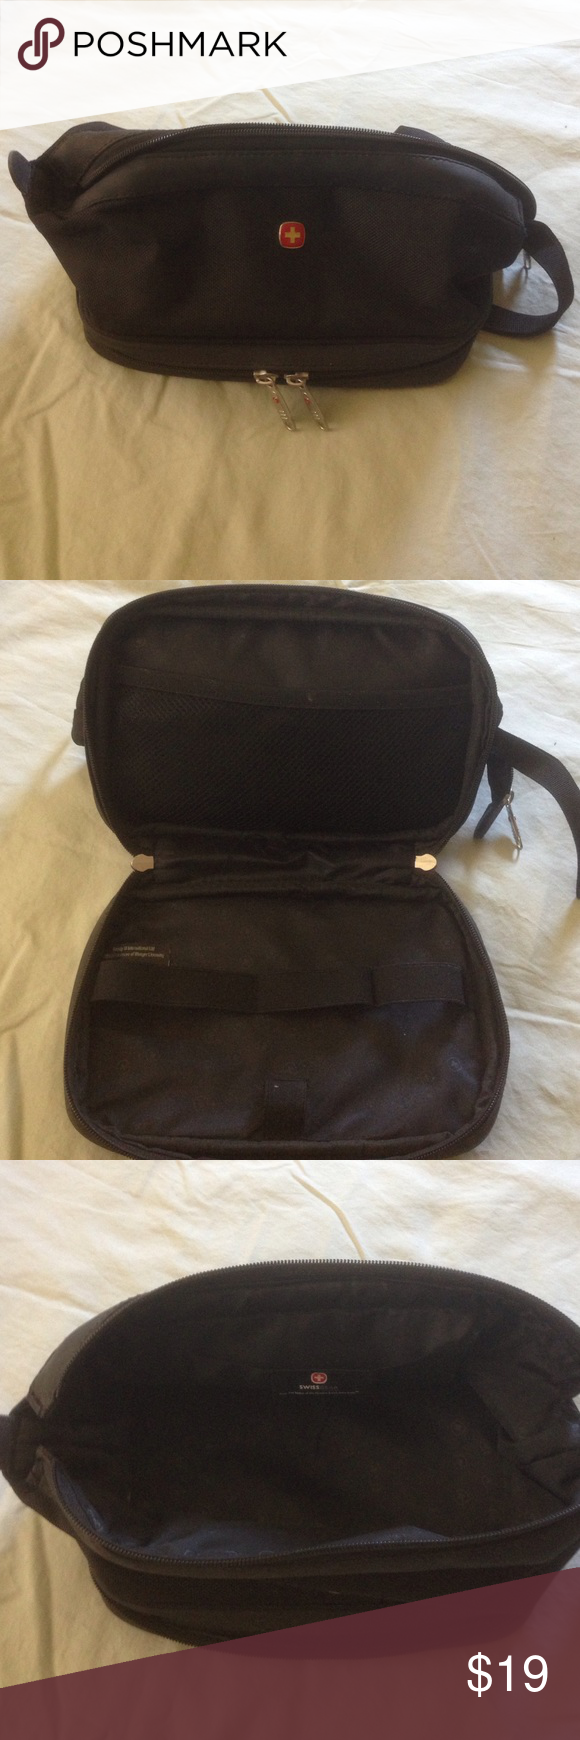 5b20f00cd21a Swiss Gear Toiletry Bag Gently used men s Swiss toiletries bag no major  marks or holes in great shape. From the makers of the Swiss Army knife  Swiss Gear ...